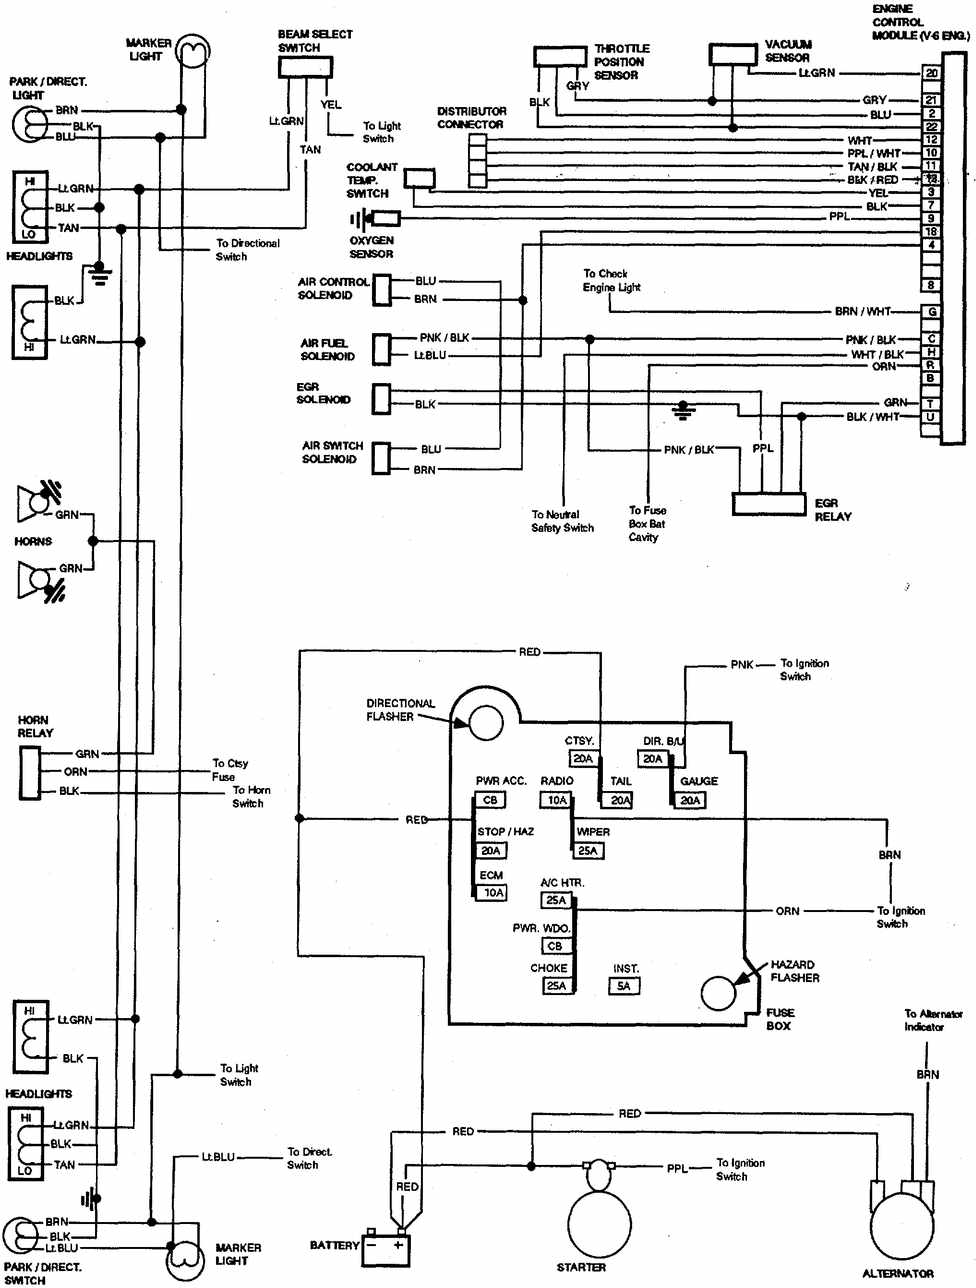 2005 Yukon Stereo Wiring Harness Guide And Troubleshooting Of Xl Radio Free Image About Diagram Schematic Chevrolet V8 Trucks 1981 1987 Electrical Gmc